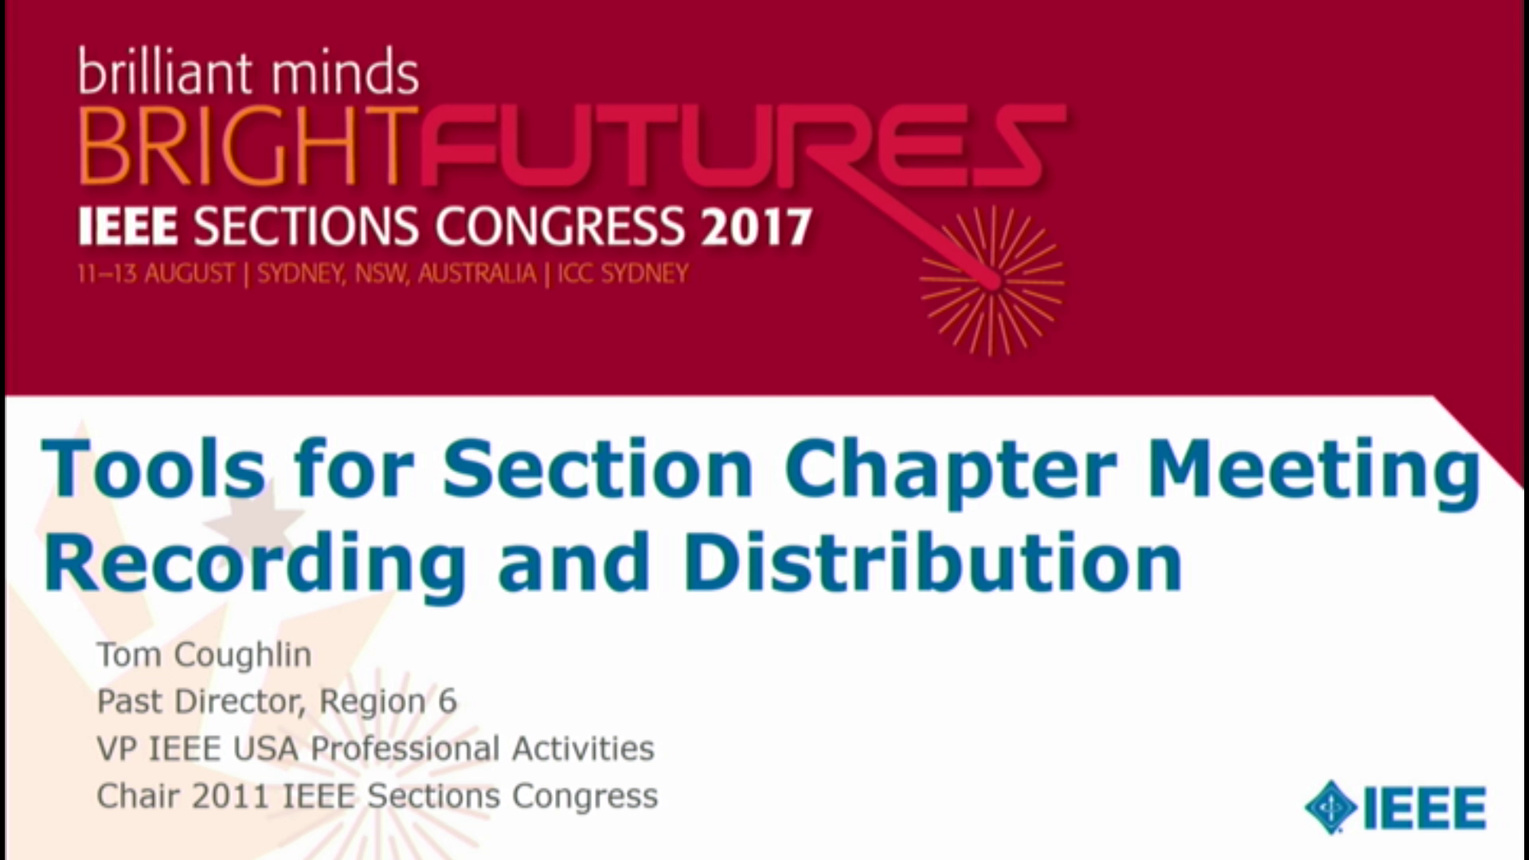 Tools for Section Chapter Meeting Recording and Distribution - Tom Coughlin - Brief Sessions: Sections Congress 2017